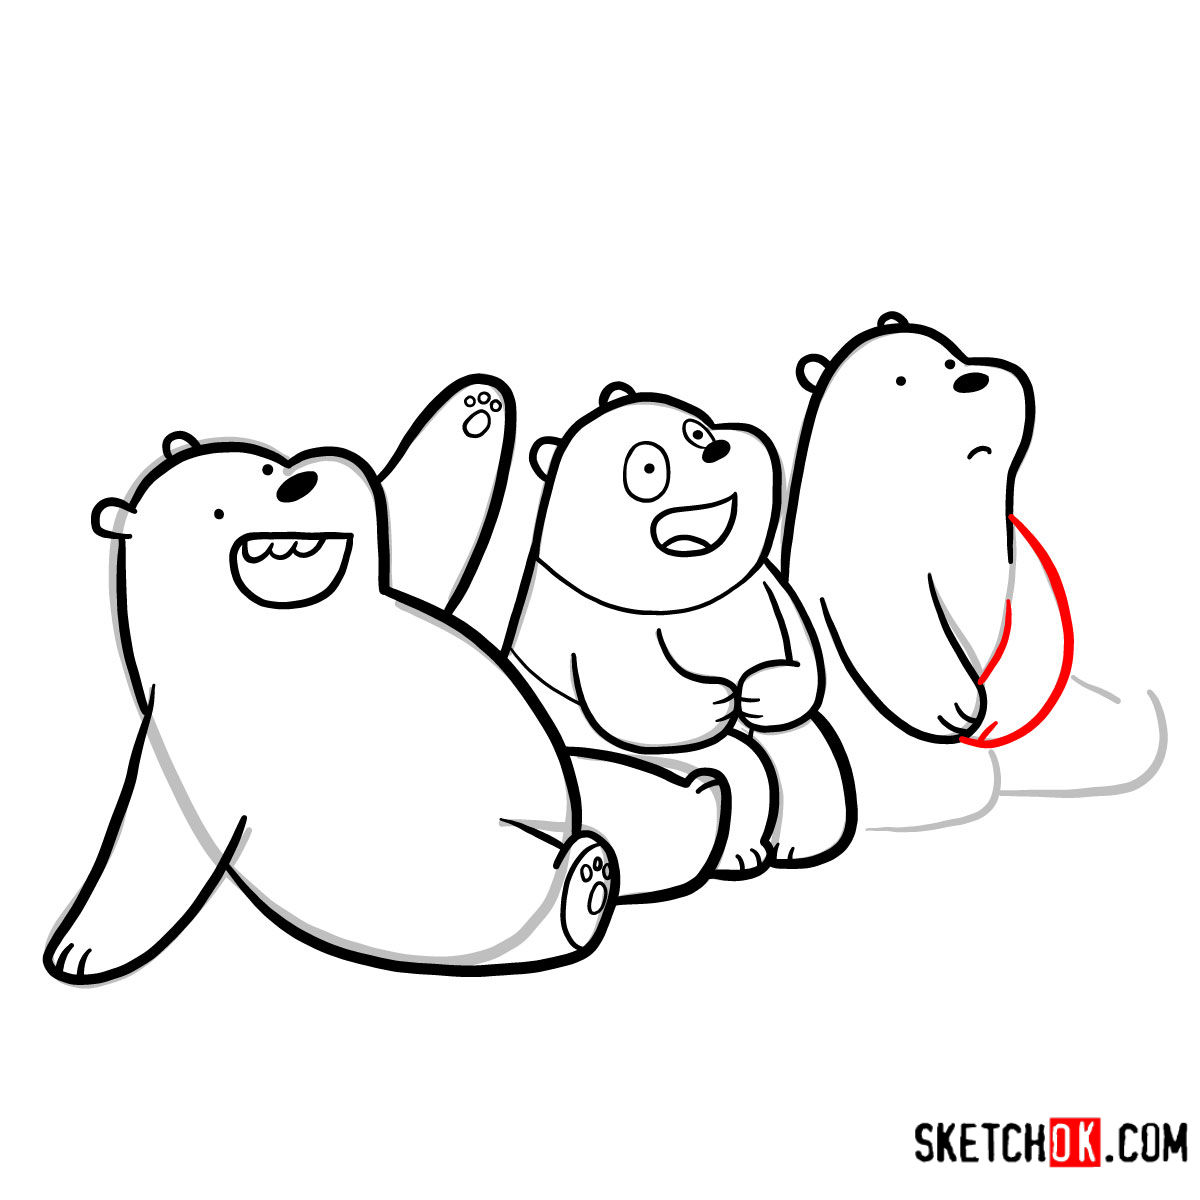 How to draw all three bears together | We Bare Bears - step 19